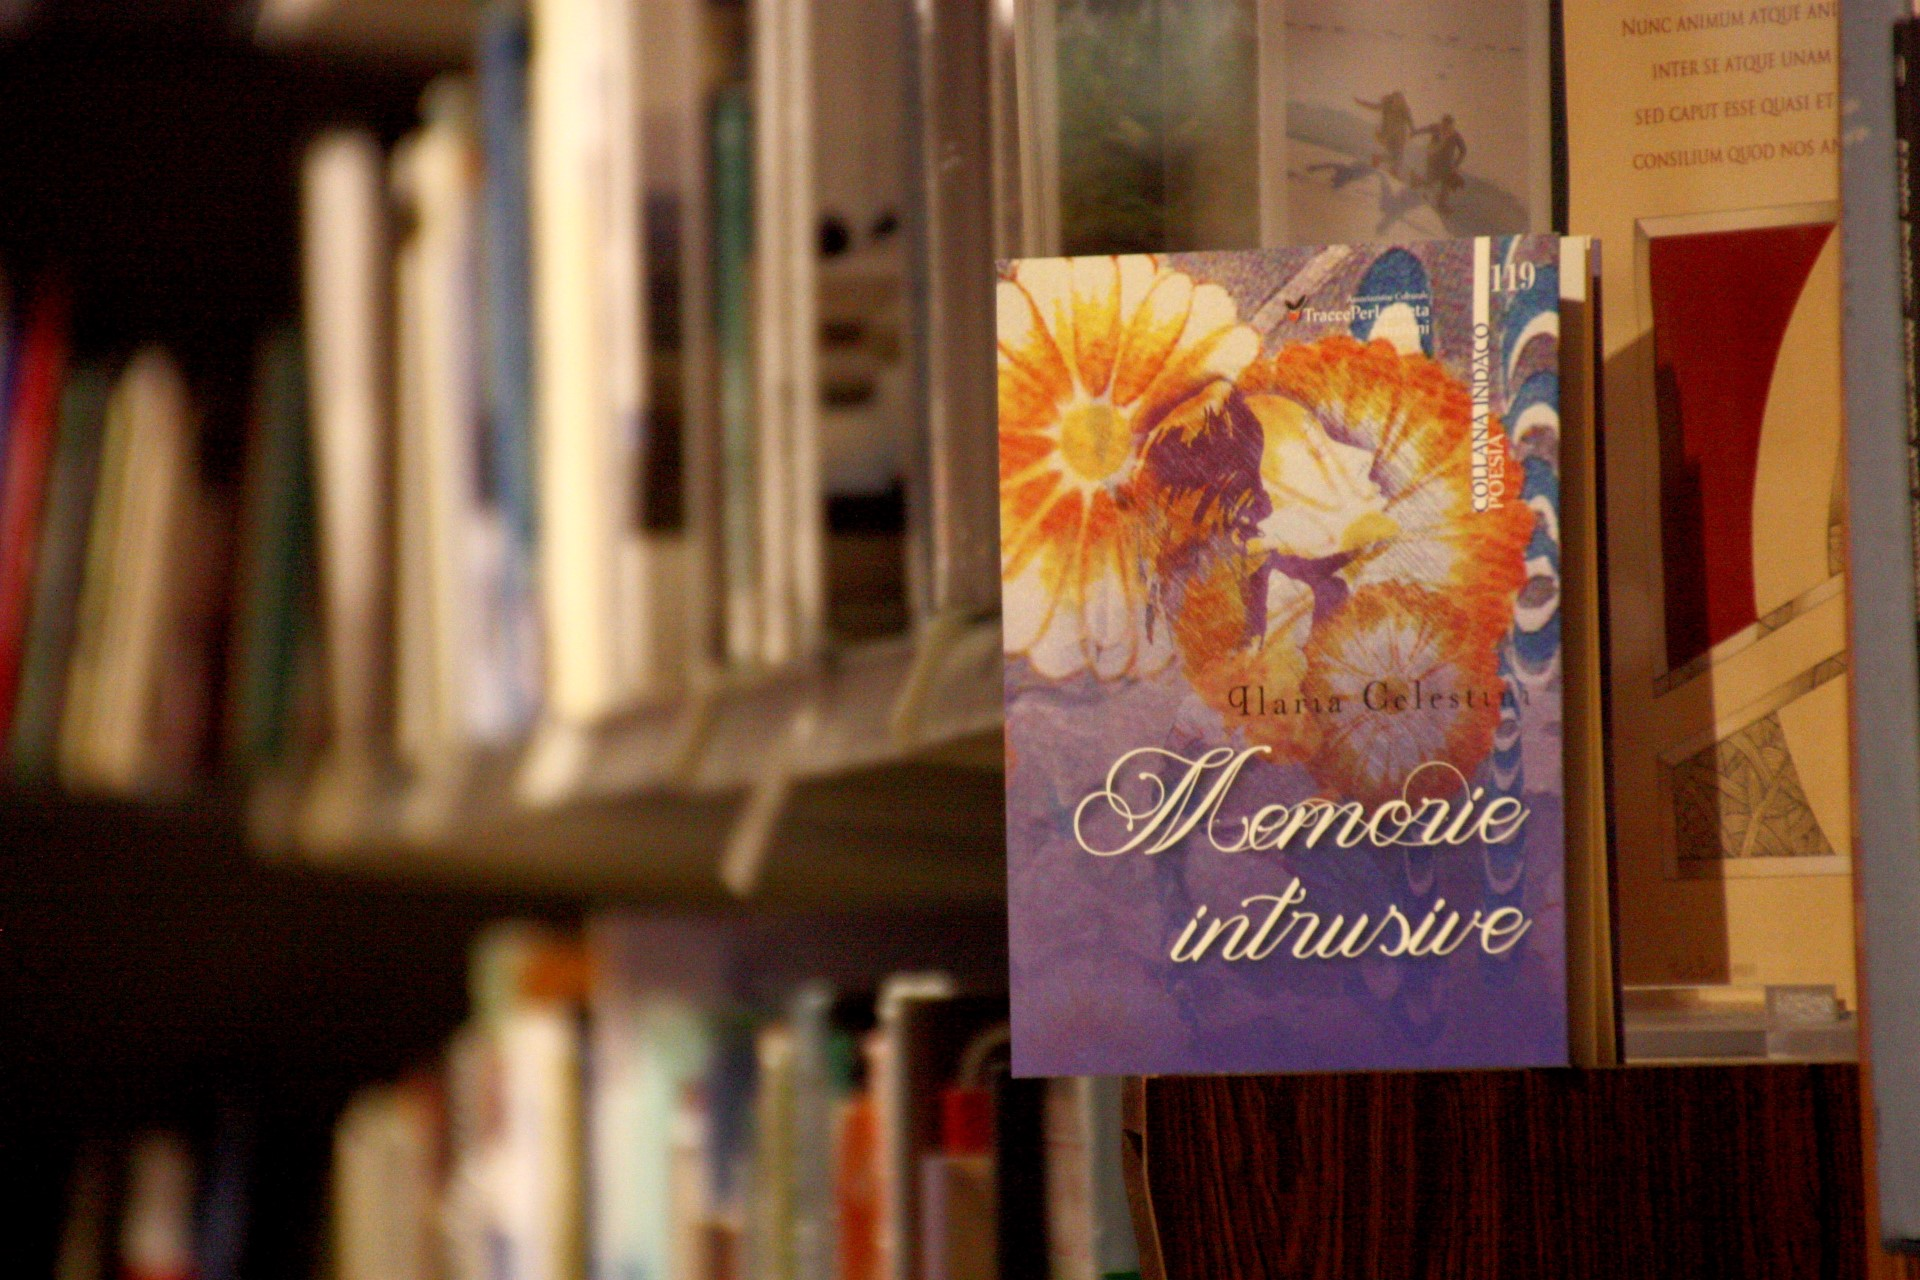 Memorie Intrusive di Ilaria Celestini – Recensione di Luciano Domenighini